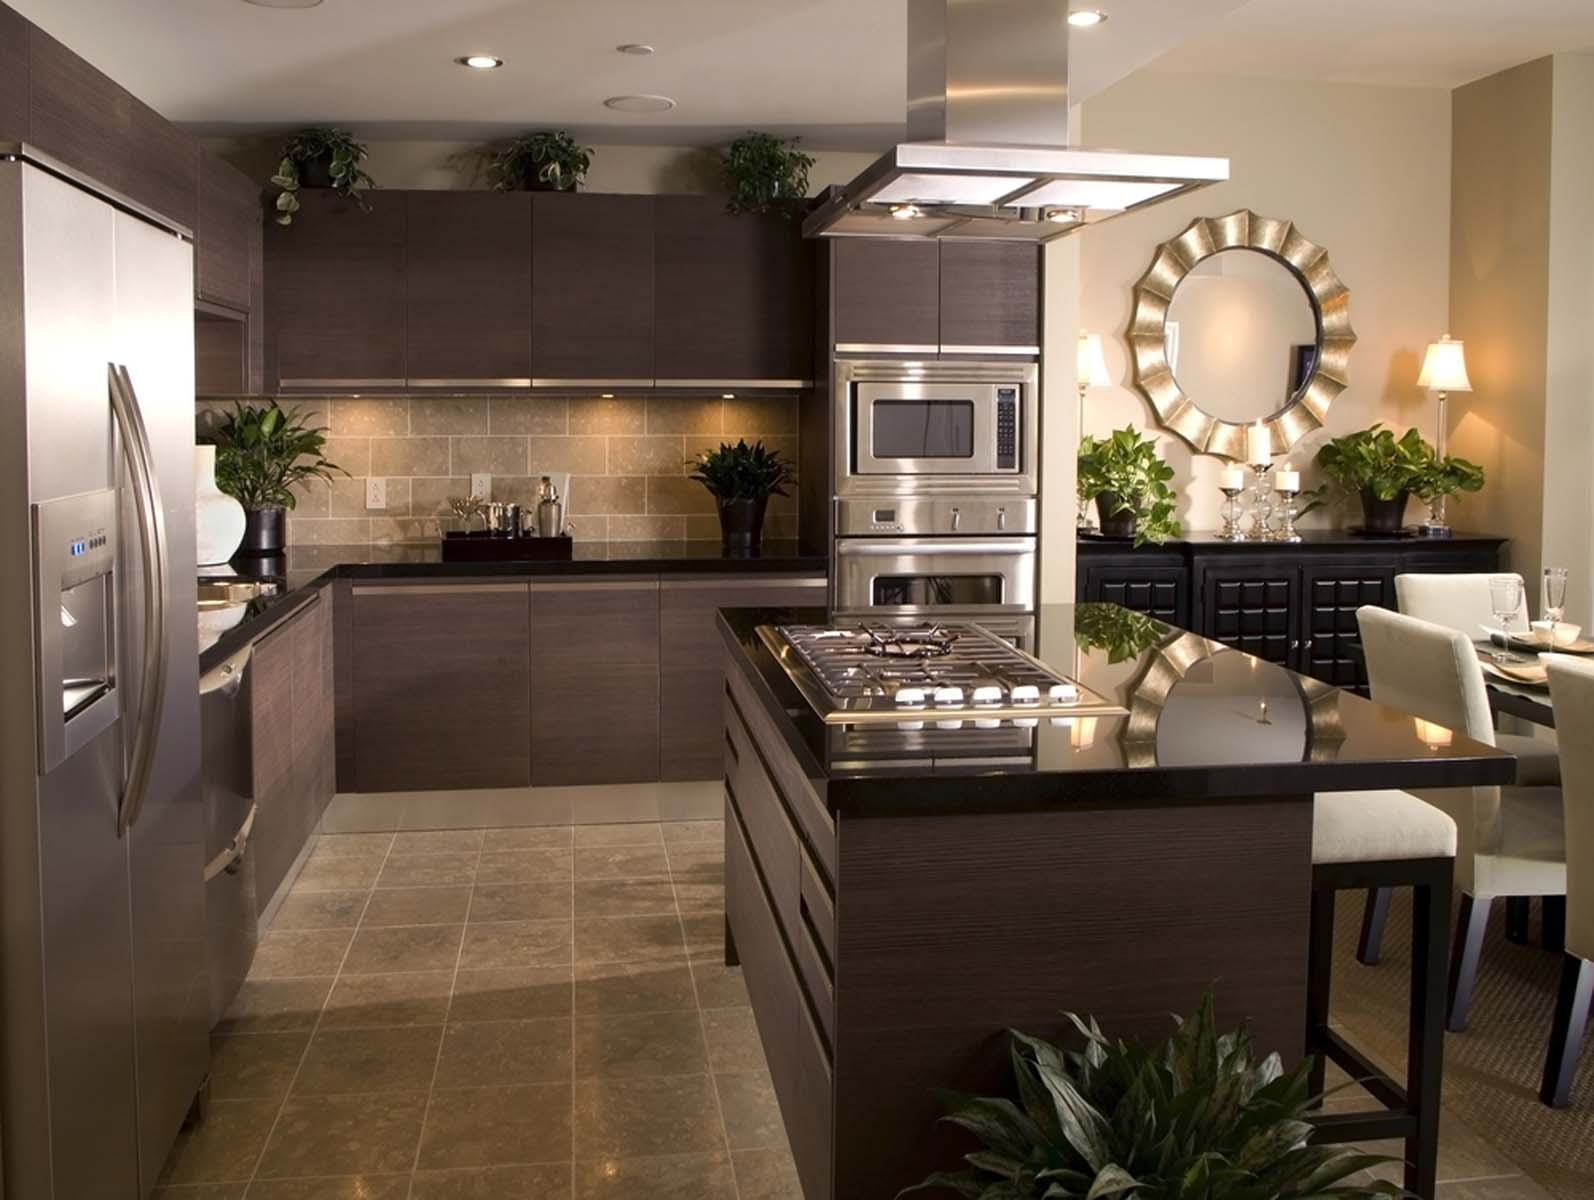 taskforce kitchen design ideas-4